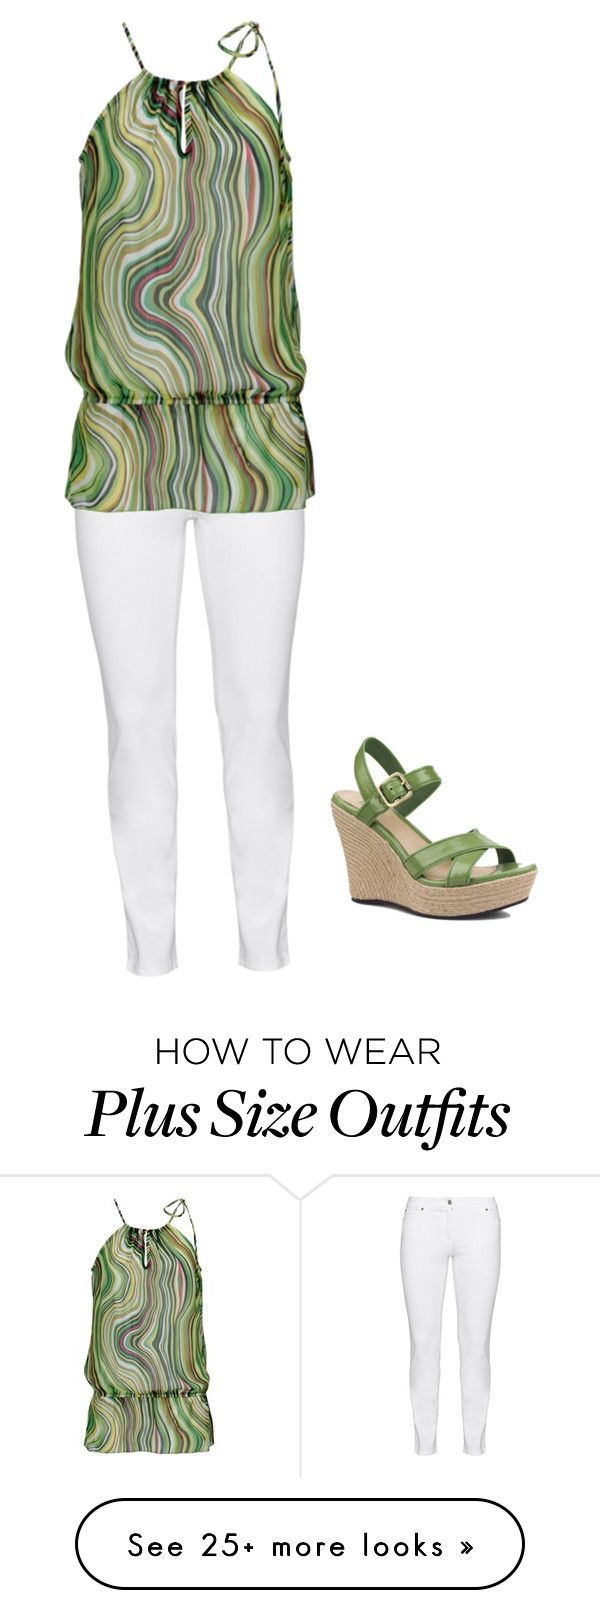 """spring"" by vay-brown on Polyvore featuring Steilmann and UGG Australia #curvy #fashion"